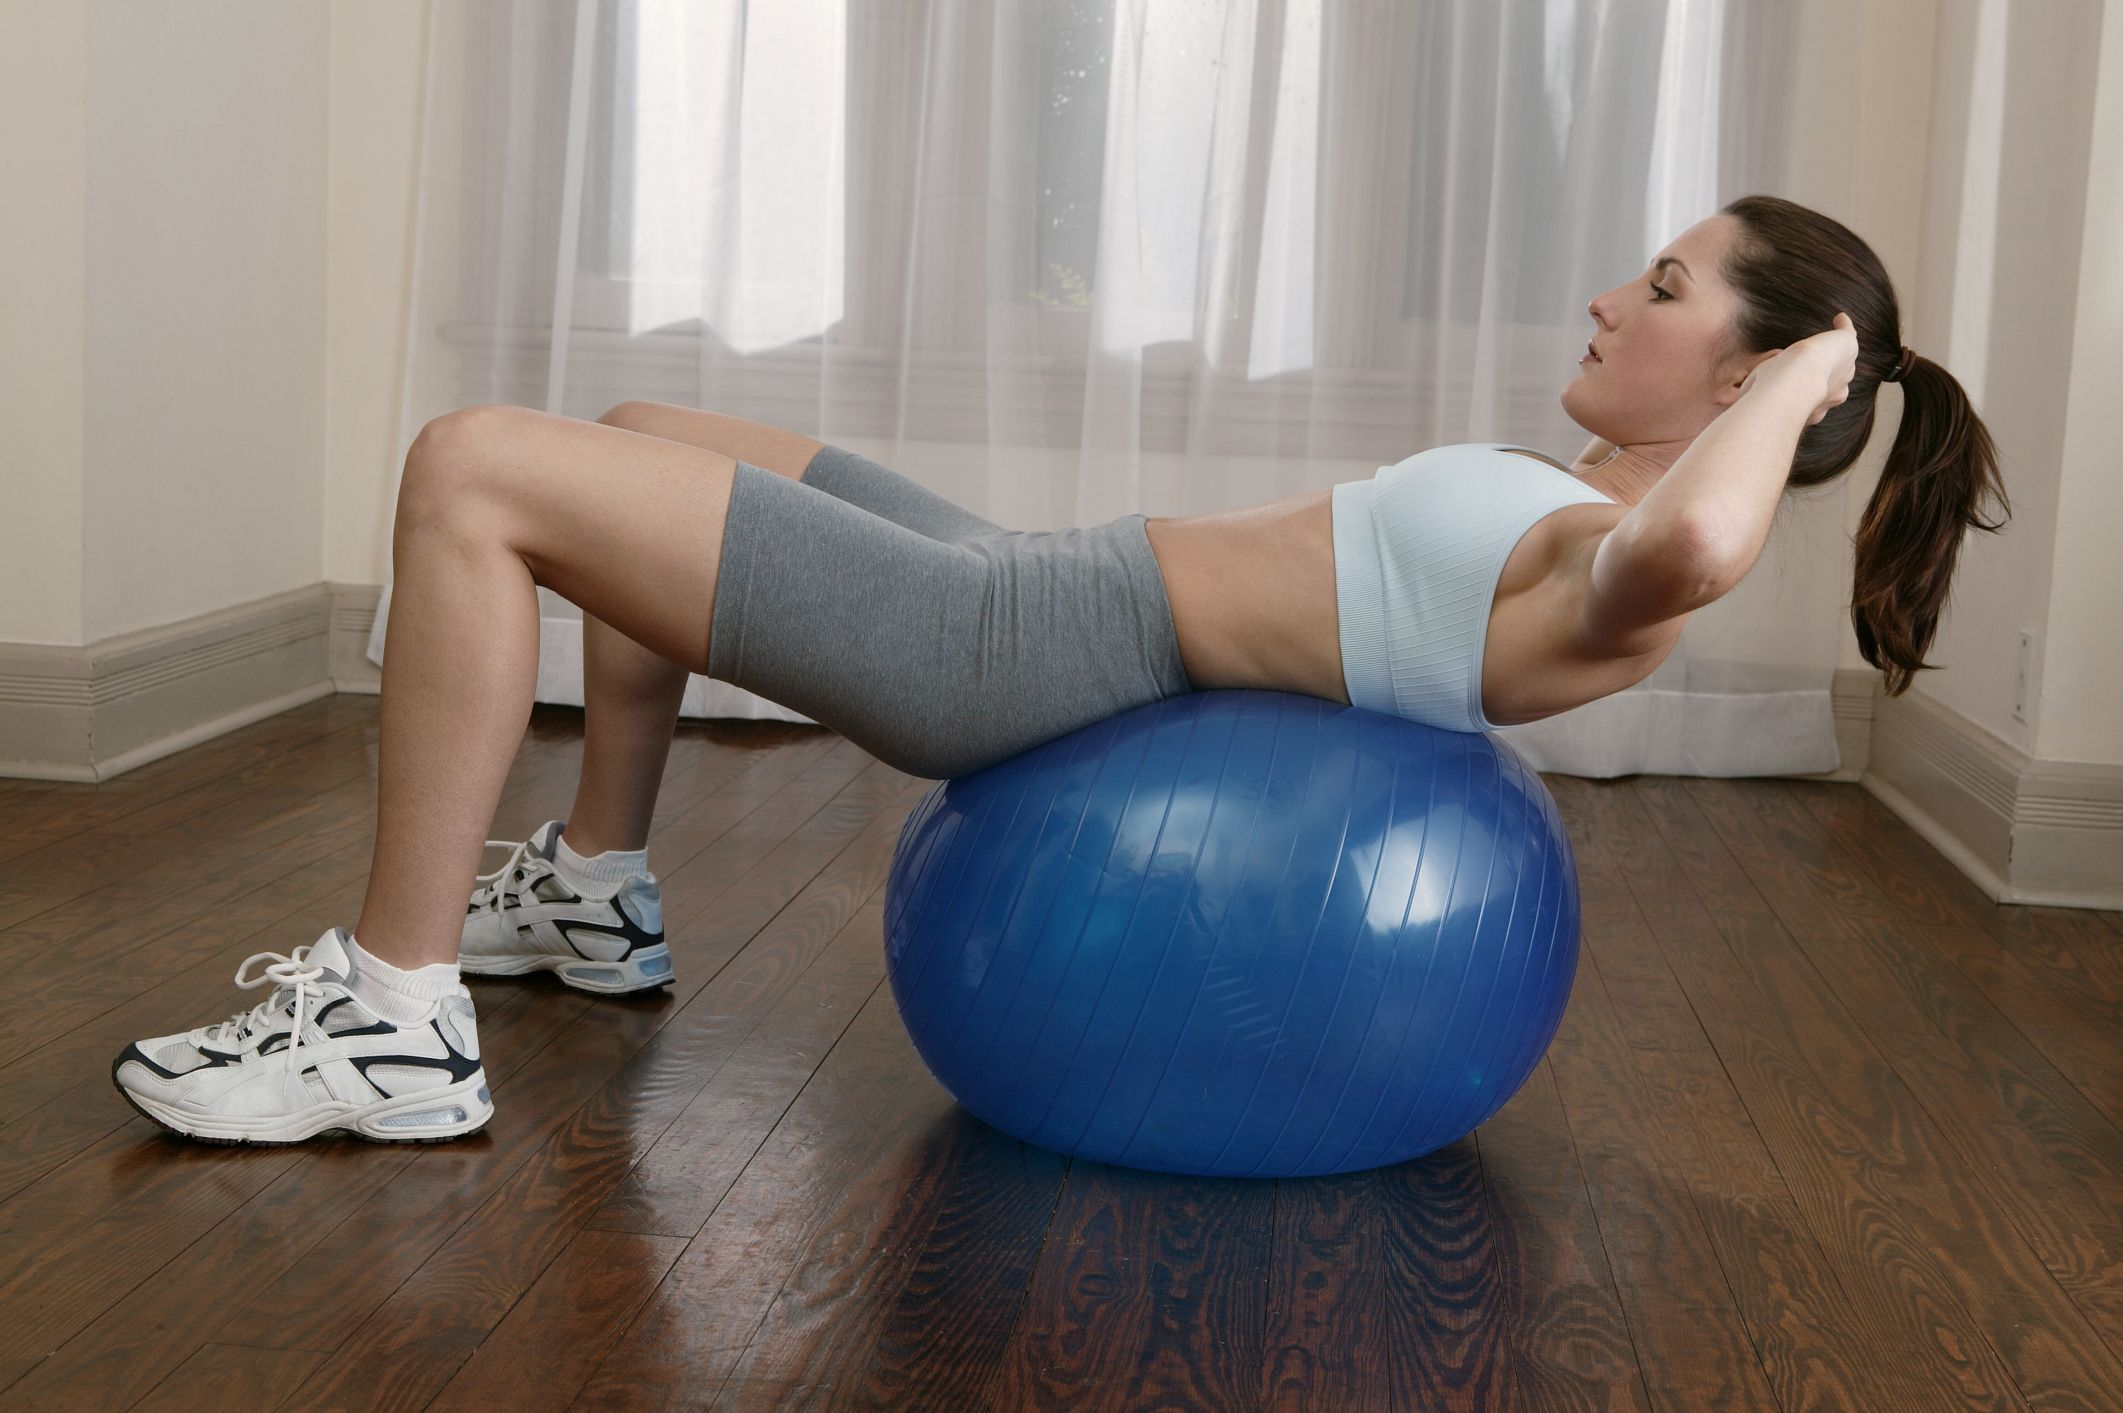 9aa447d0765e2f9ec719d77b05302764 - How Do I Know What Size Stability Ball To Get